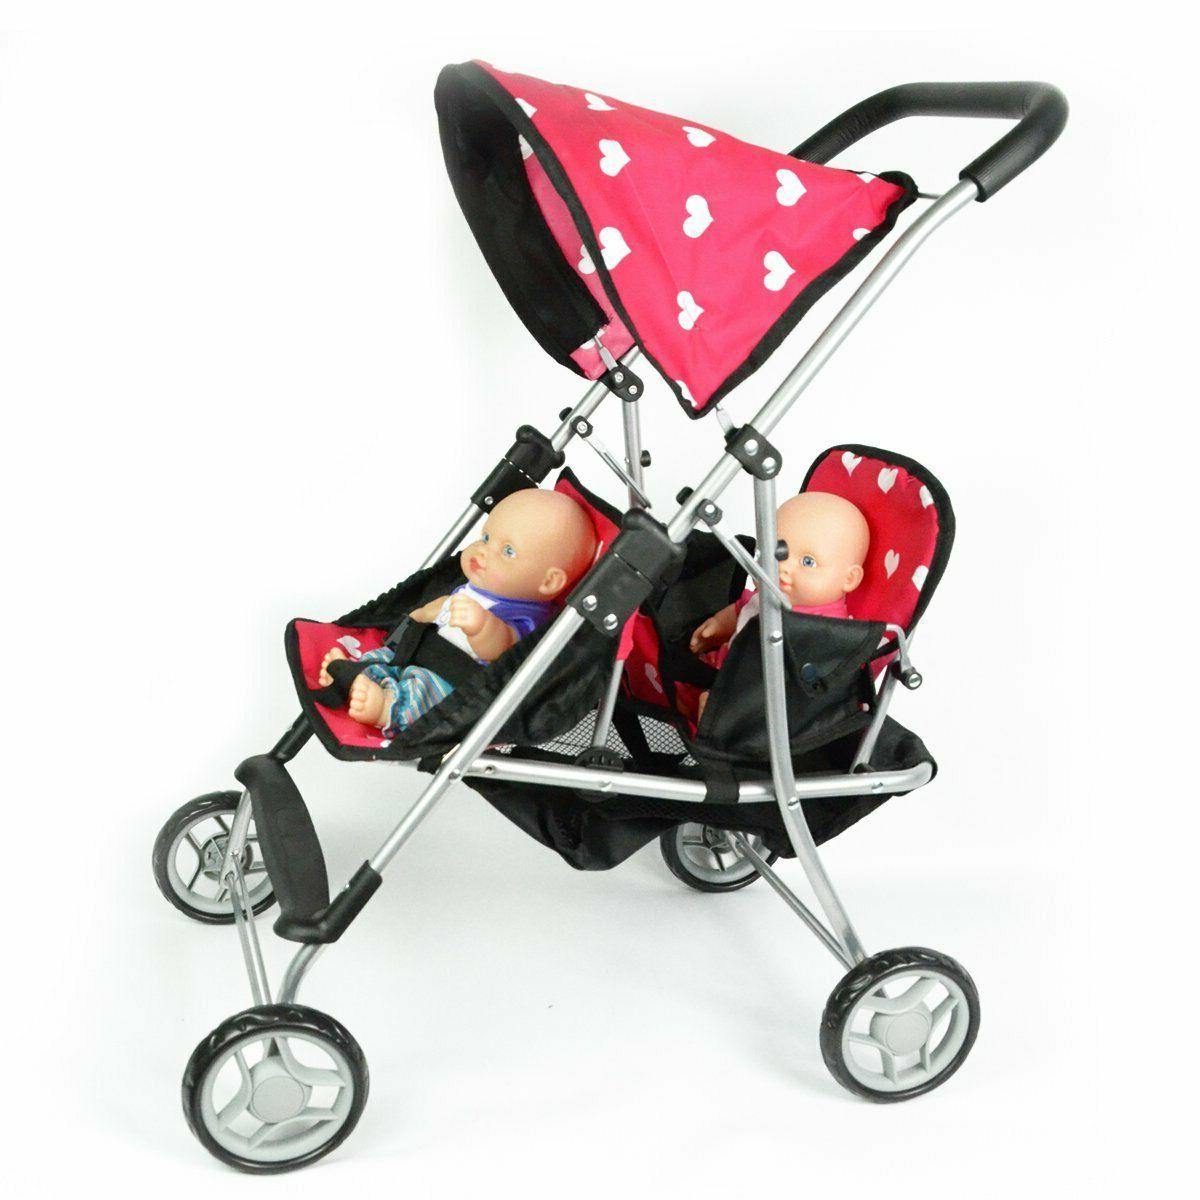 Disney Baby Mickey Mouse Smooth Ride Travel System in Minnie